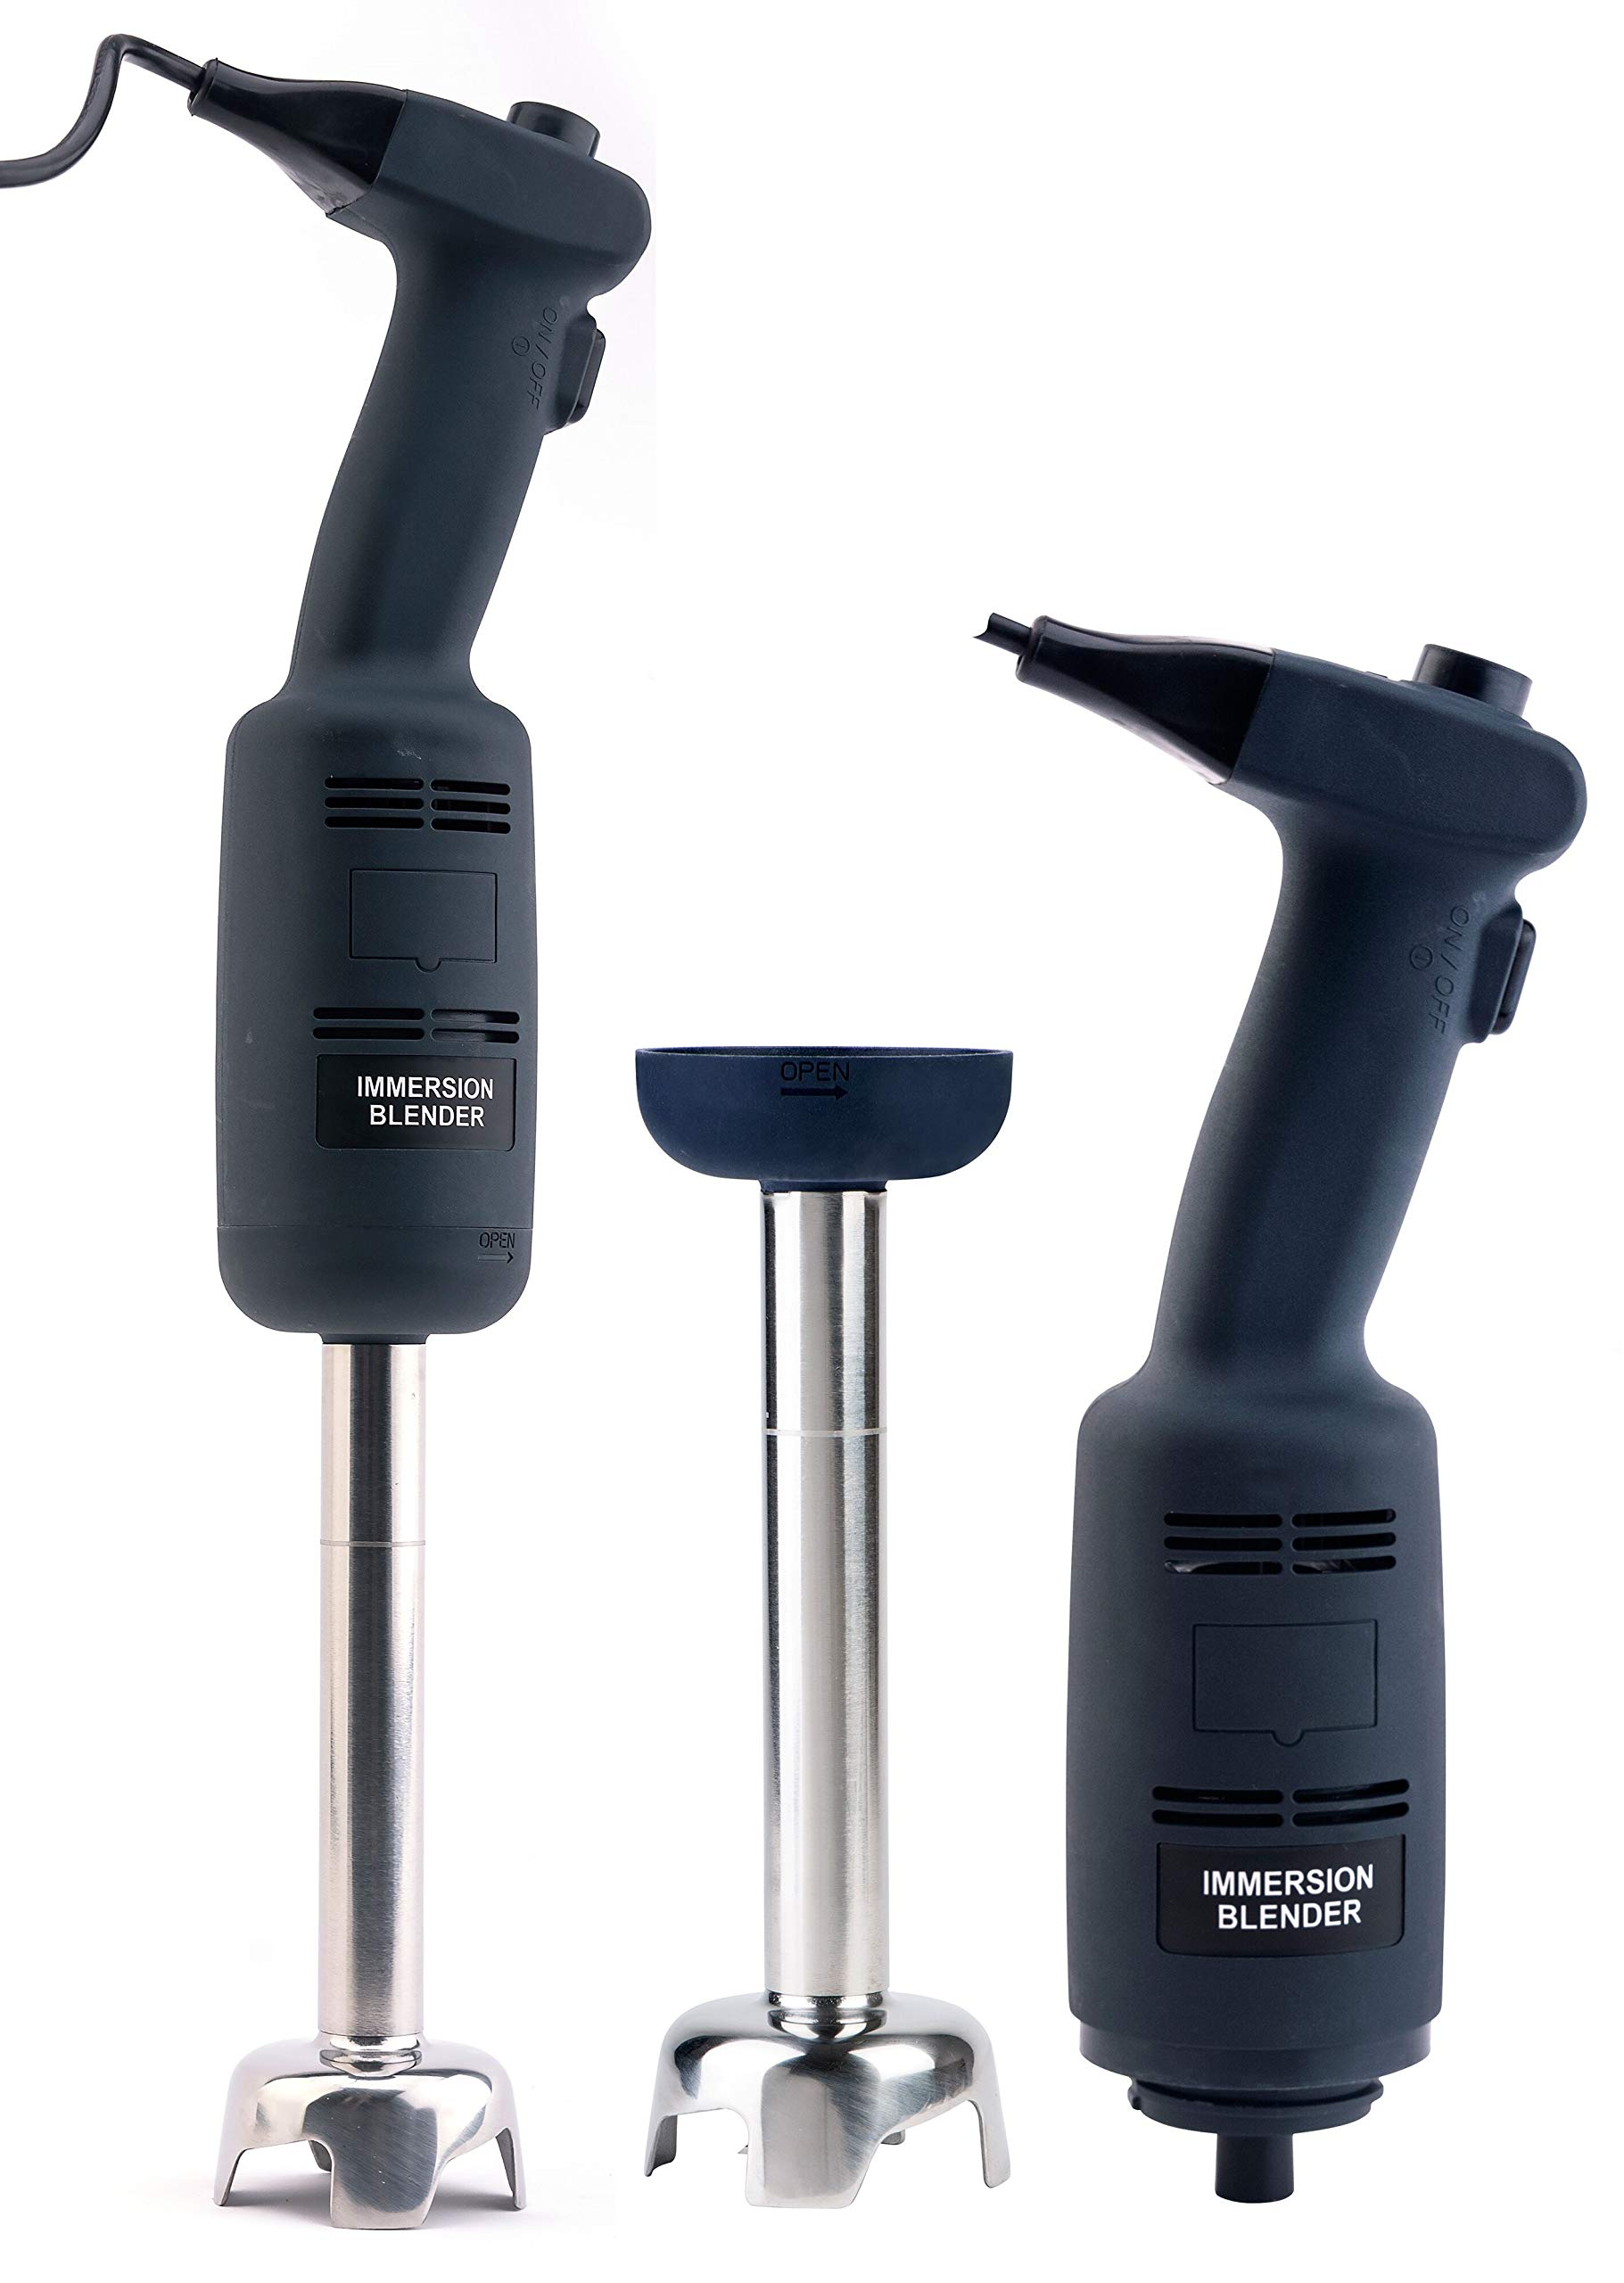 Zz Pro Commercial Electric Big Stix Immersion Blender Hand held variable speed Mixer 220 Watt power with 6-Inch Removable Shaft, 6-Gallon capacity(MW220S6) by ZzPro (Image #6)